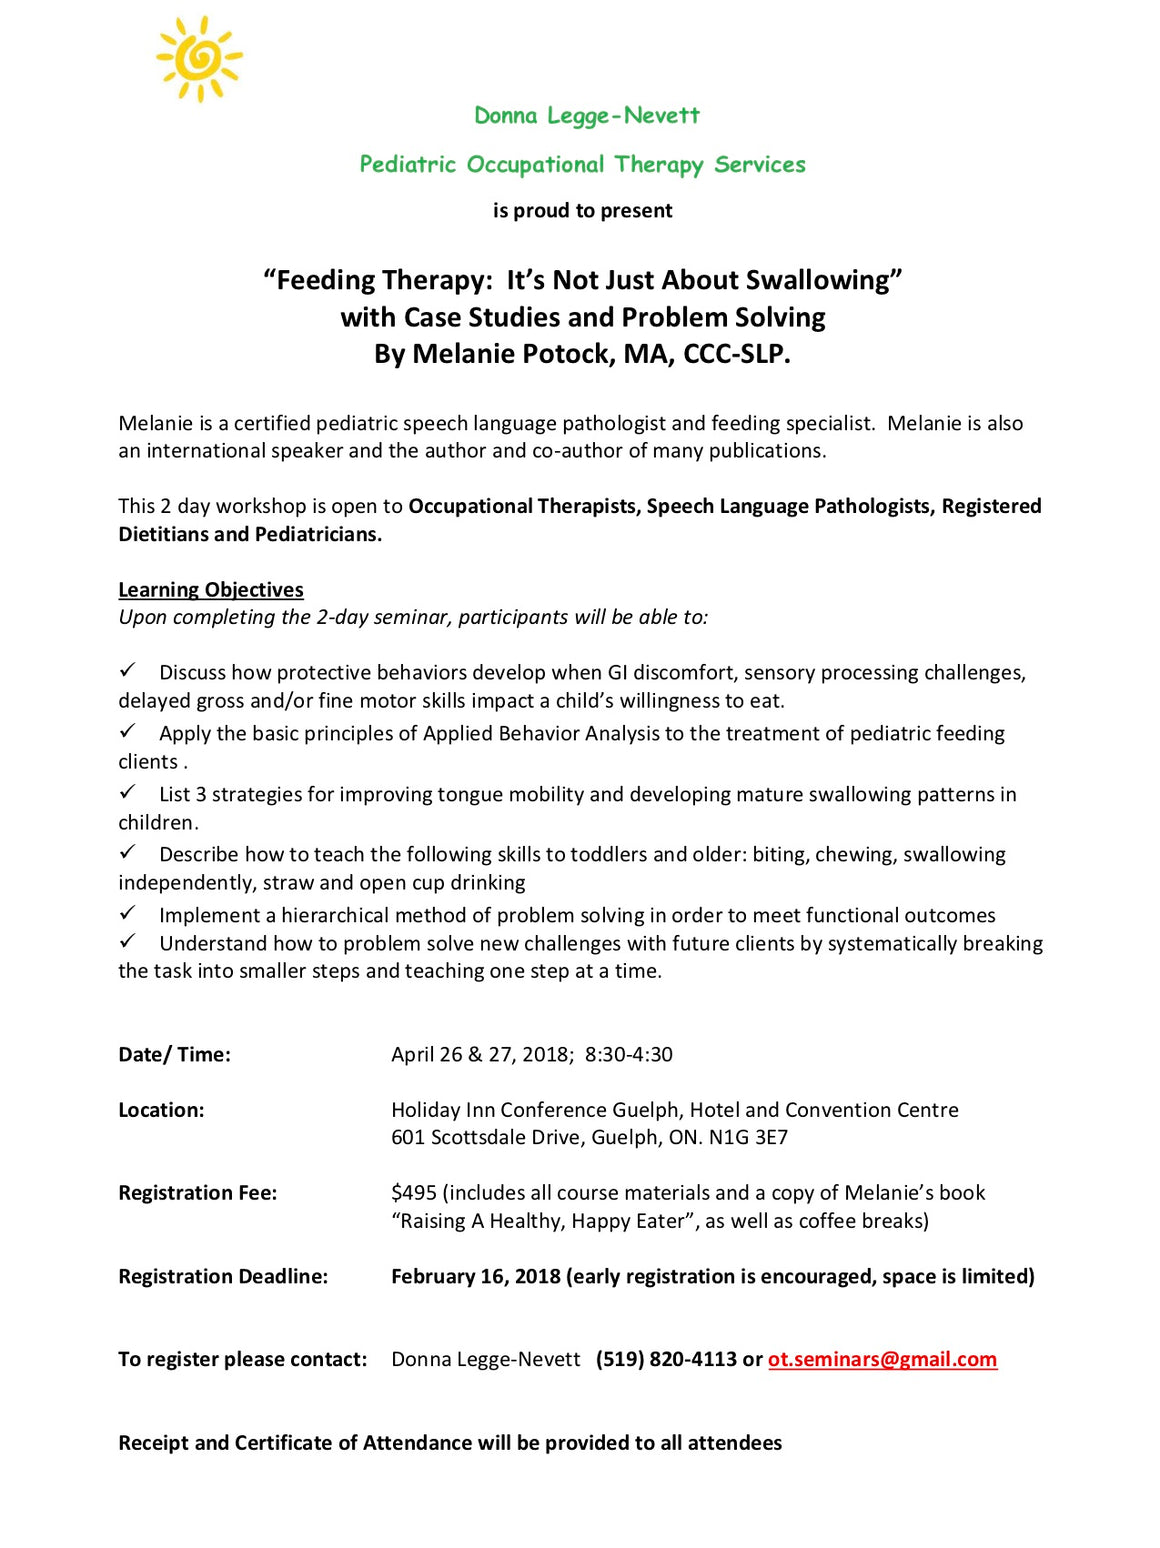 Feeding Therapy by Melanie Potock April 26-27 2018